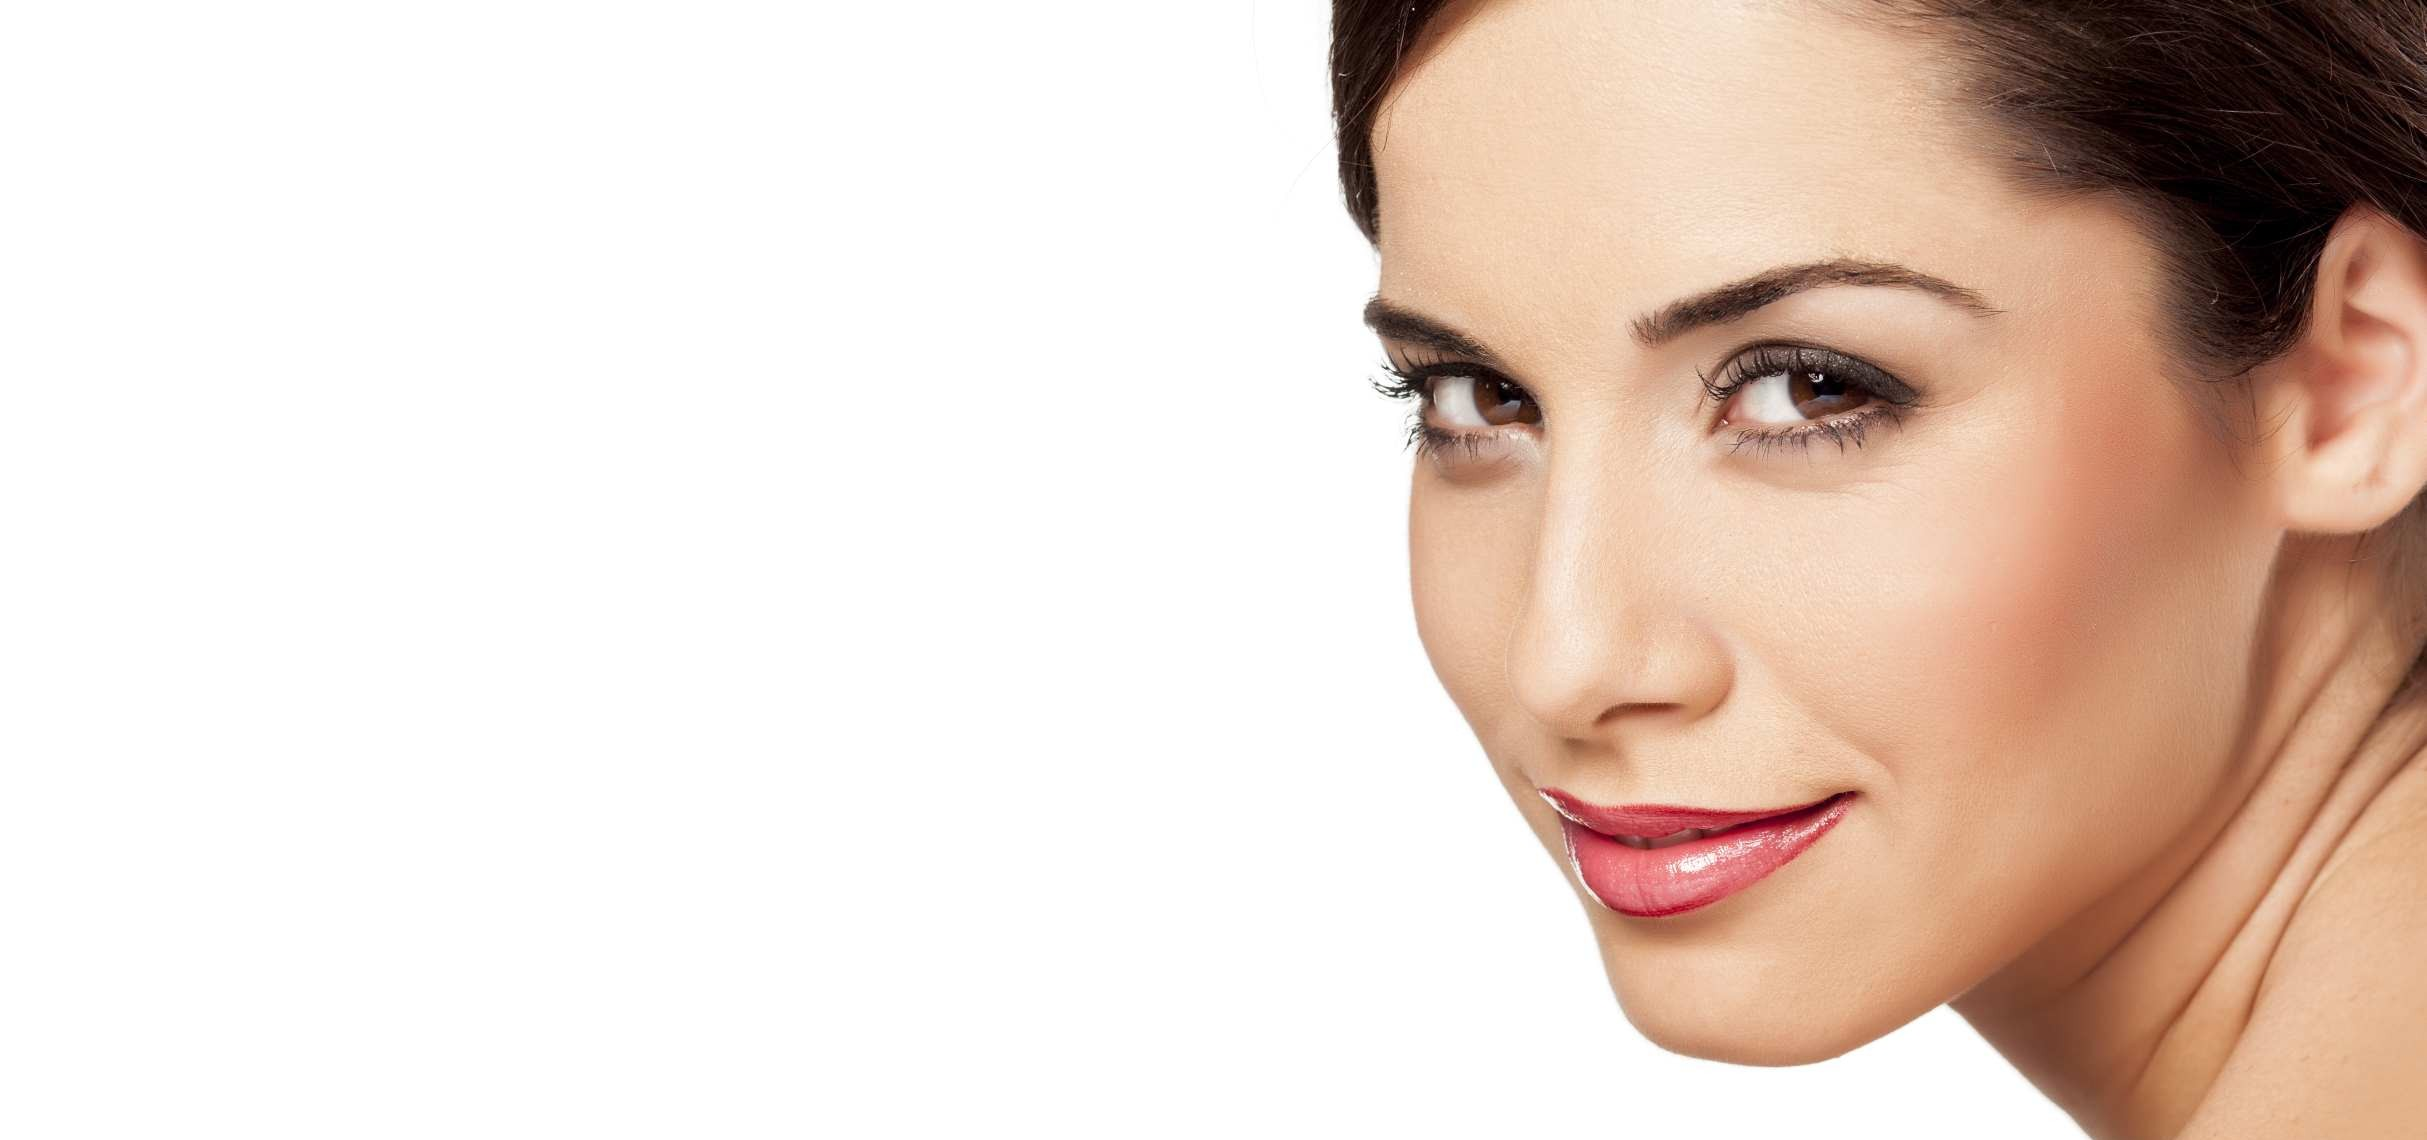 Questions to ask when considering laser treatments